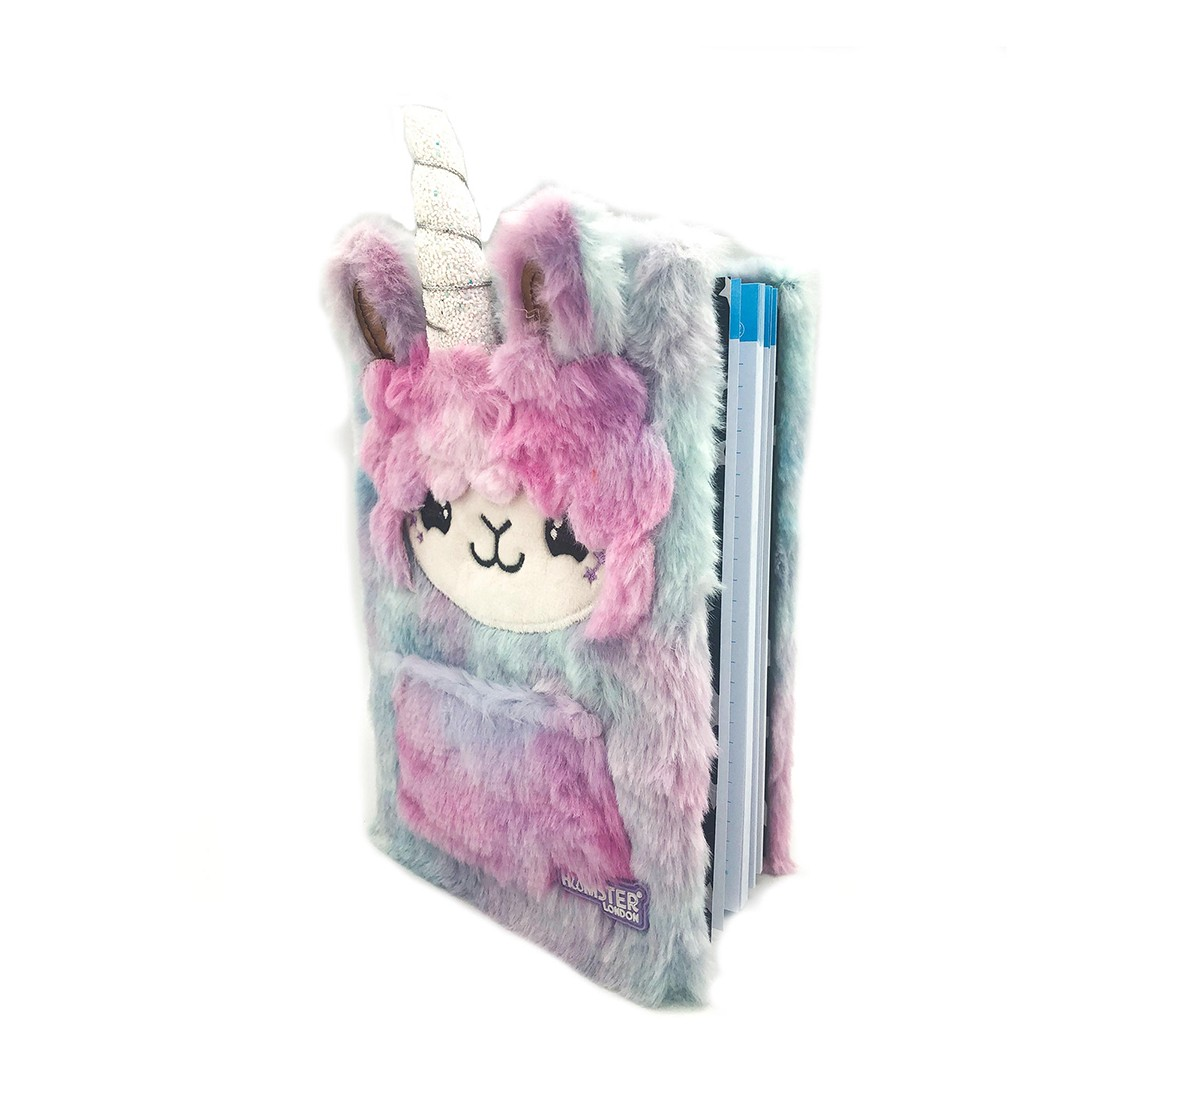 Hamster London Llama Diary for Kids age 3Y+ (Pink)